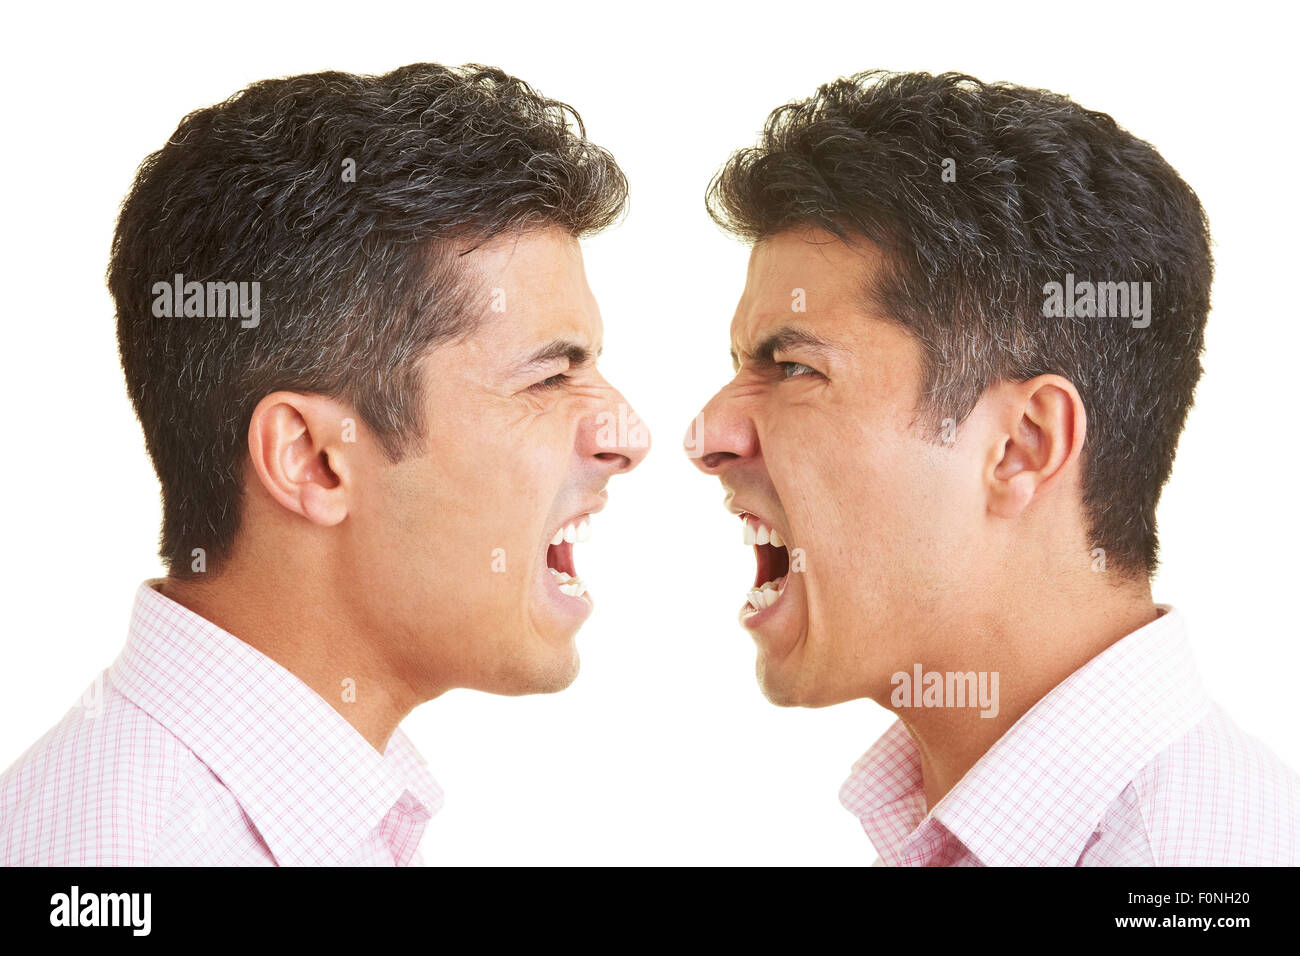 Twins Shouting At Each Other Stock Photo 86526216 Alamy